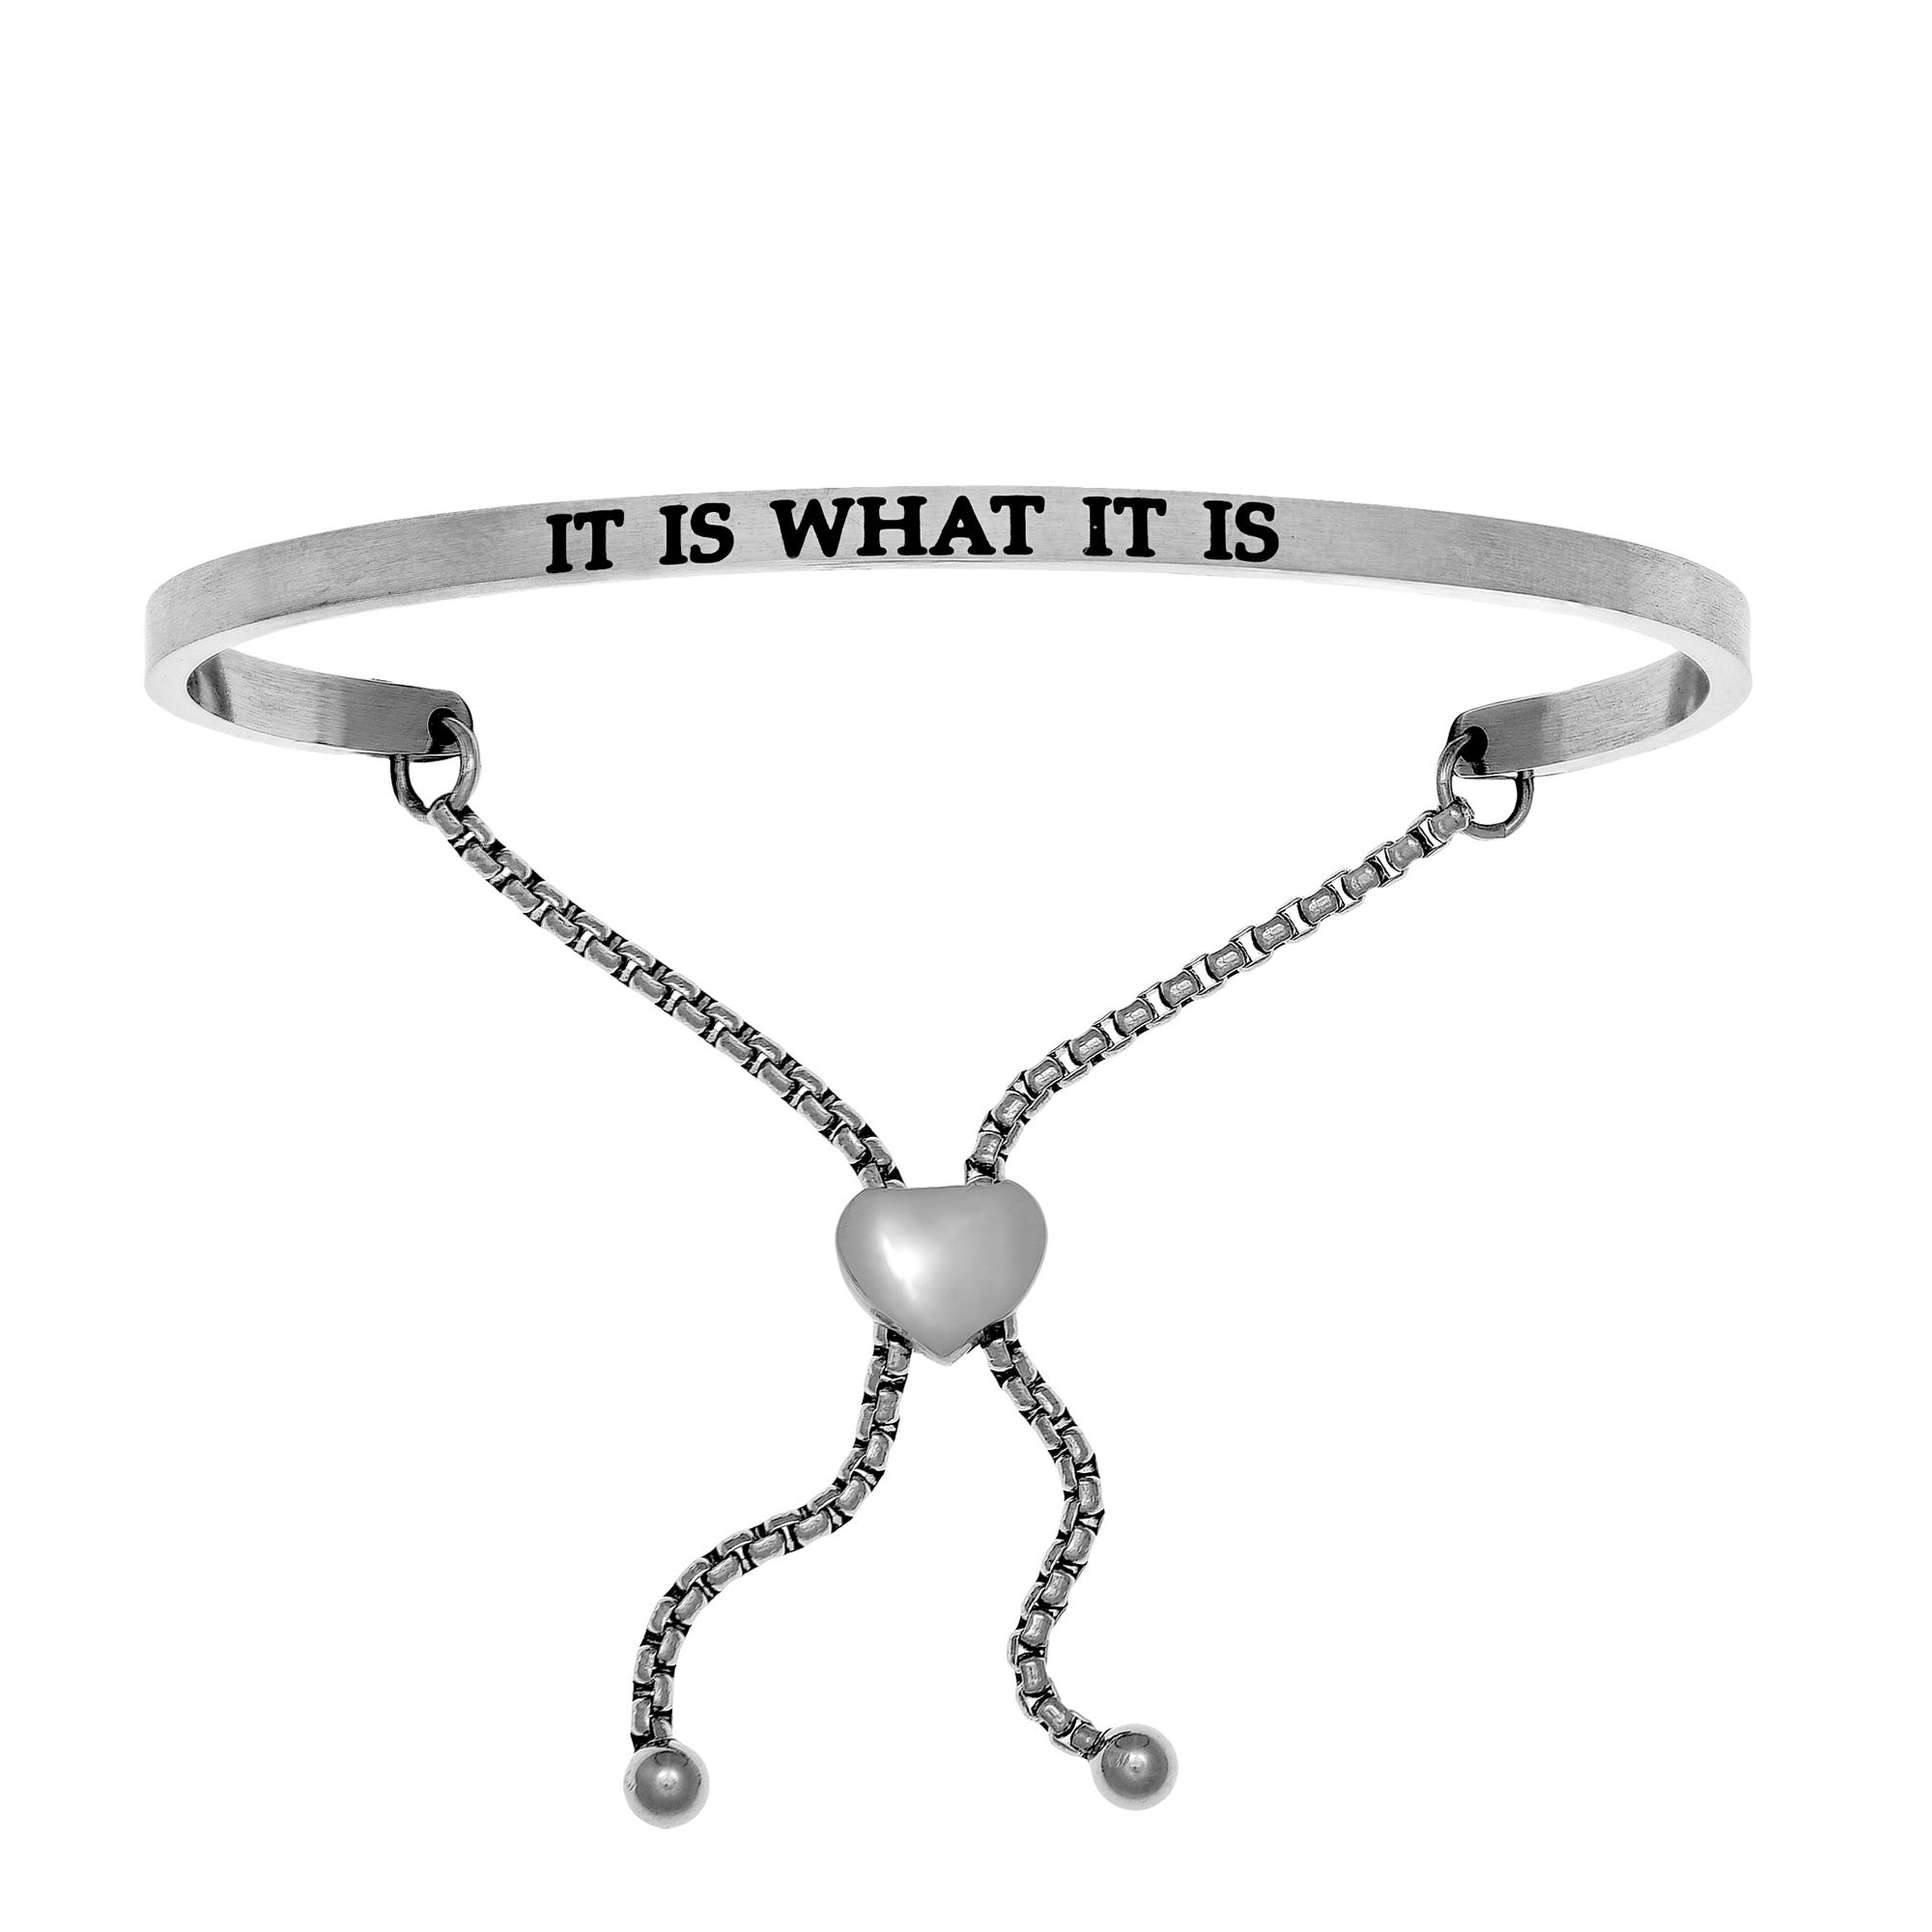 It Is What It Is. Intuitions Bolo Bracelet in White Stainless Steel